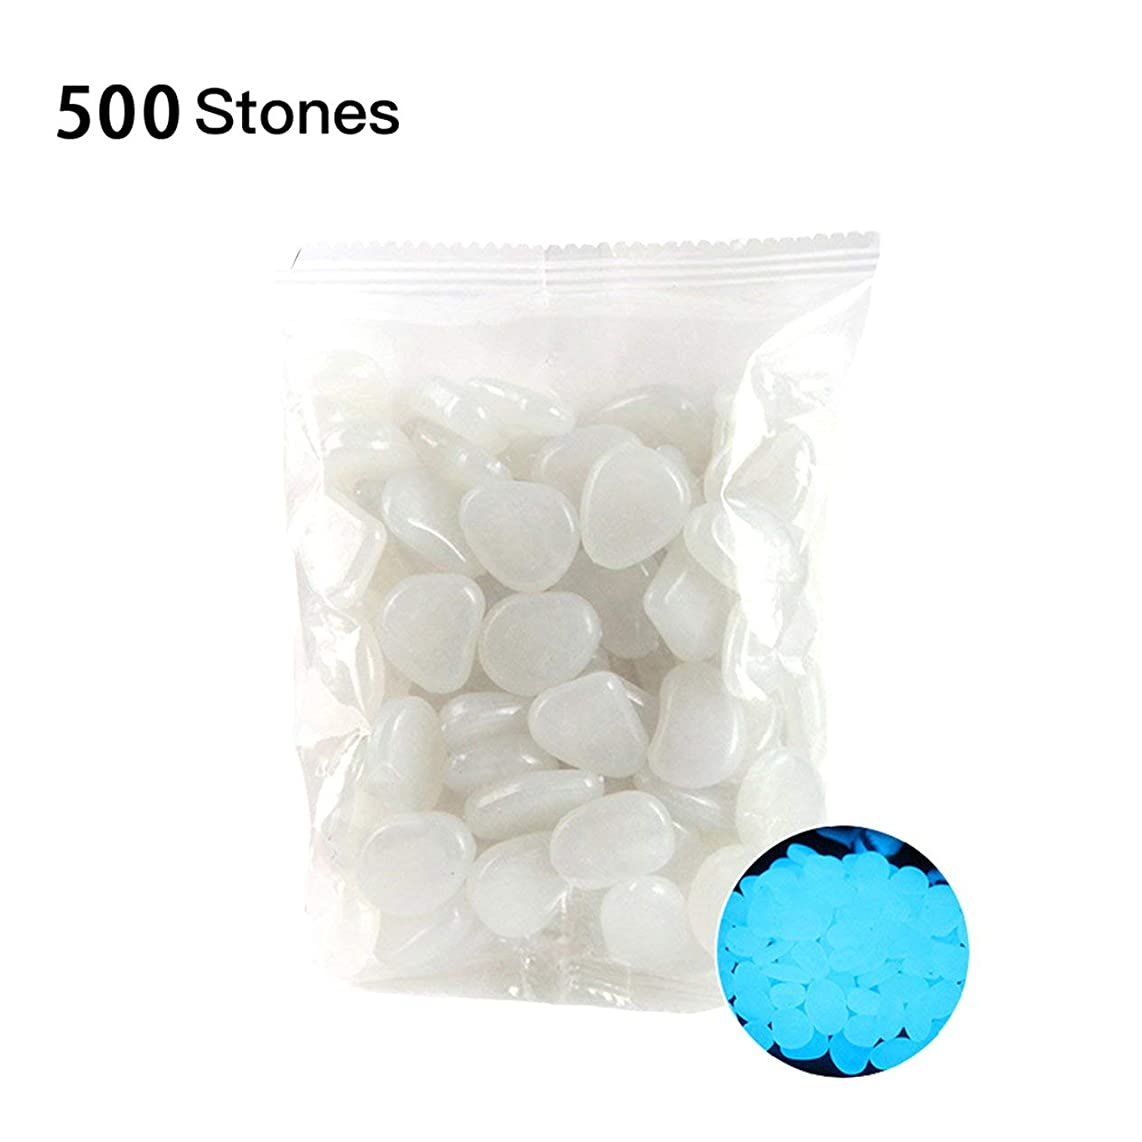 Susanda Garden Pebbles Glow Stones Rocks for Walkways Garden Path Patio Lawn Garden Yard Decor Luminous stonesWhite500pcs